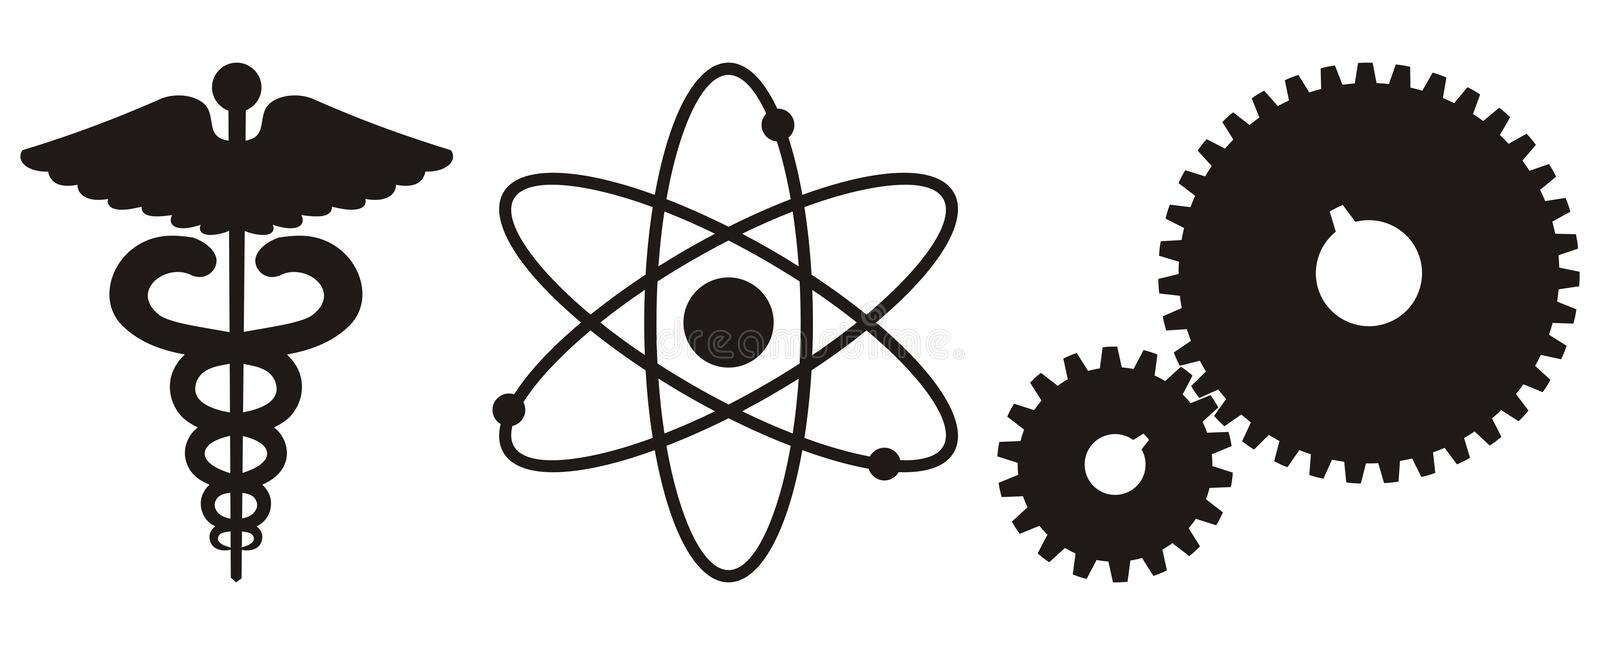 Science & Technology Icon Stock Image